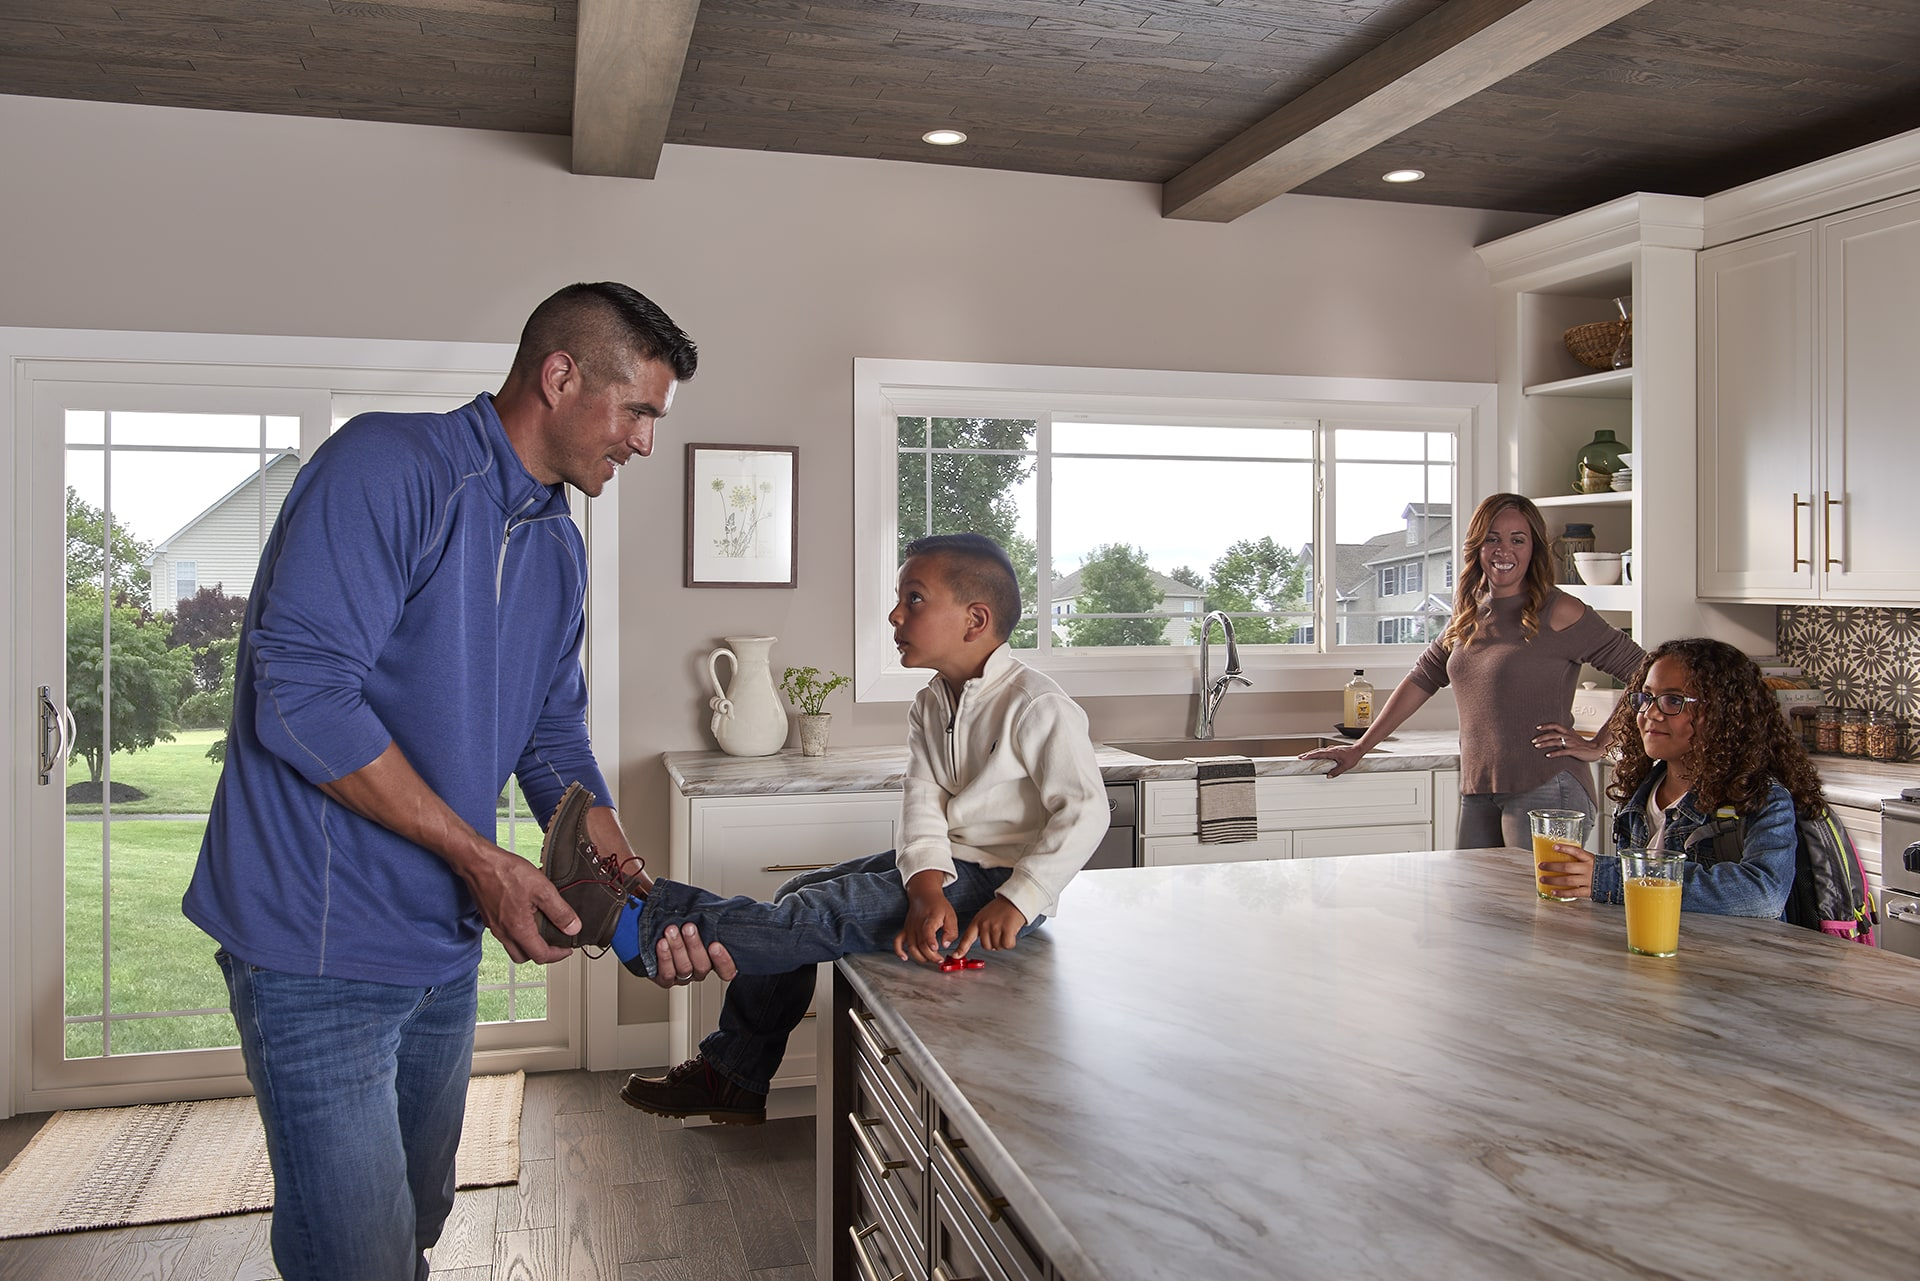 Family congregating in luxurious kitchen